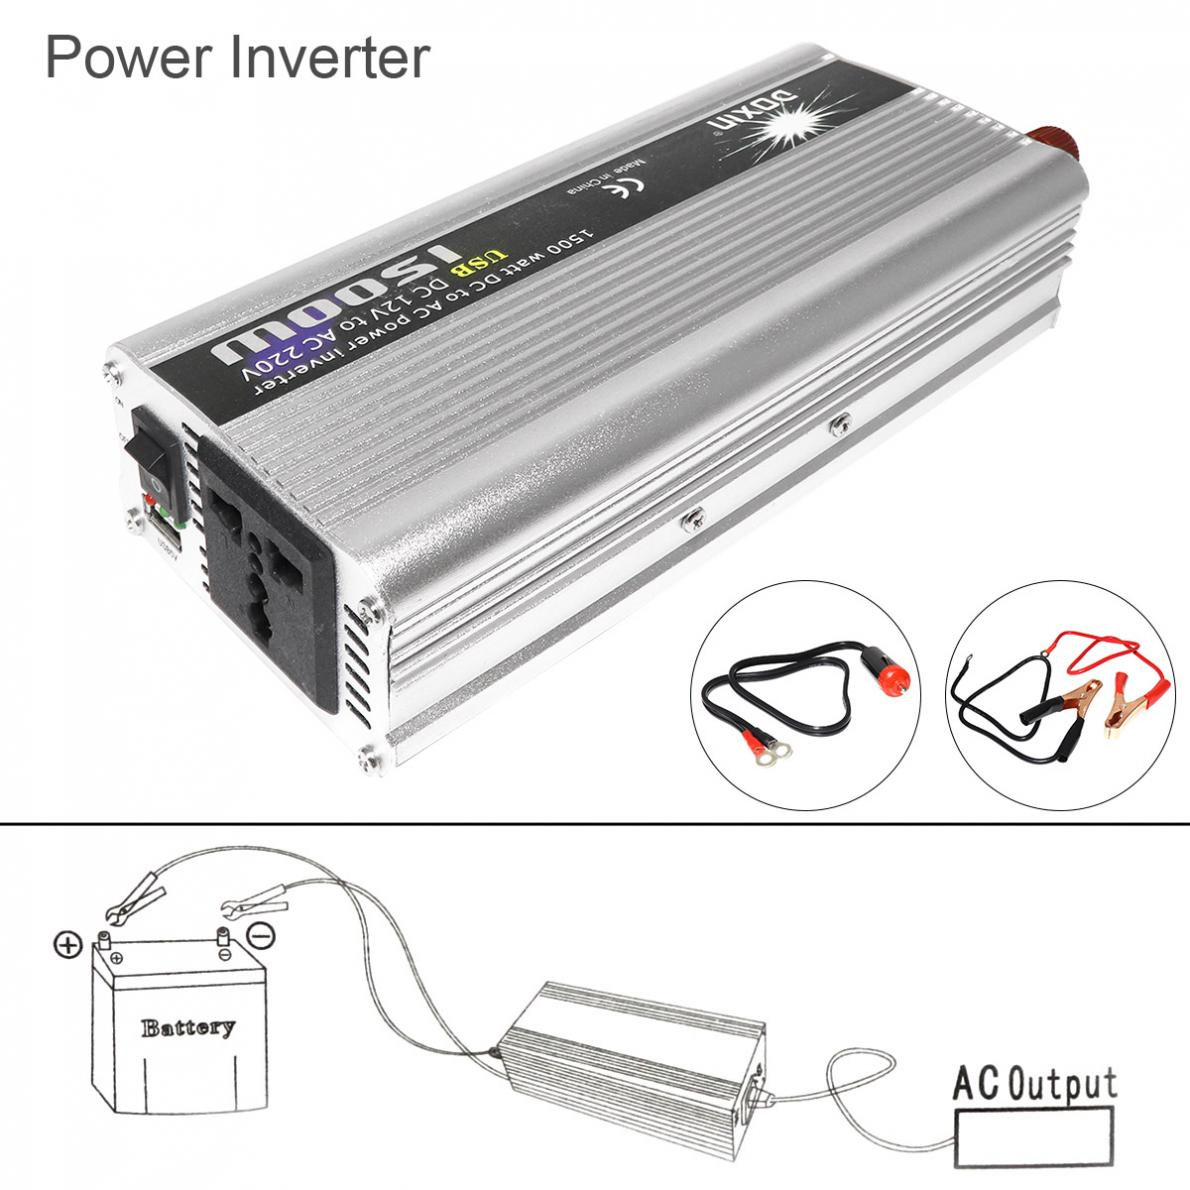 1500W Car Power <font><b>Inverter</b></font> DC <font><b>12V</b></font> 24V to AC 220V 110V USB Power Charger Converter Car <font><b>Inverter</b></font> Peak Power <font><b>3000W</b></font> image